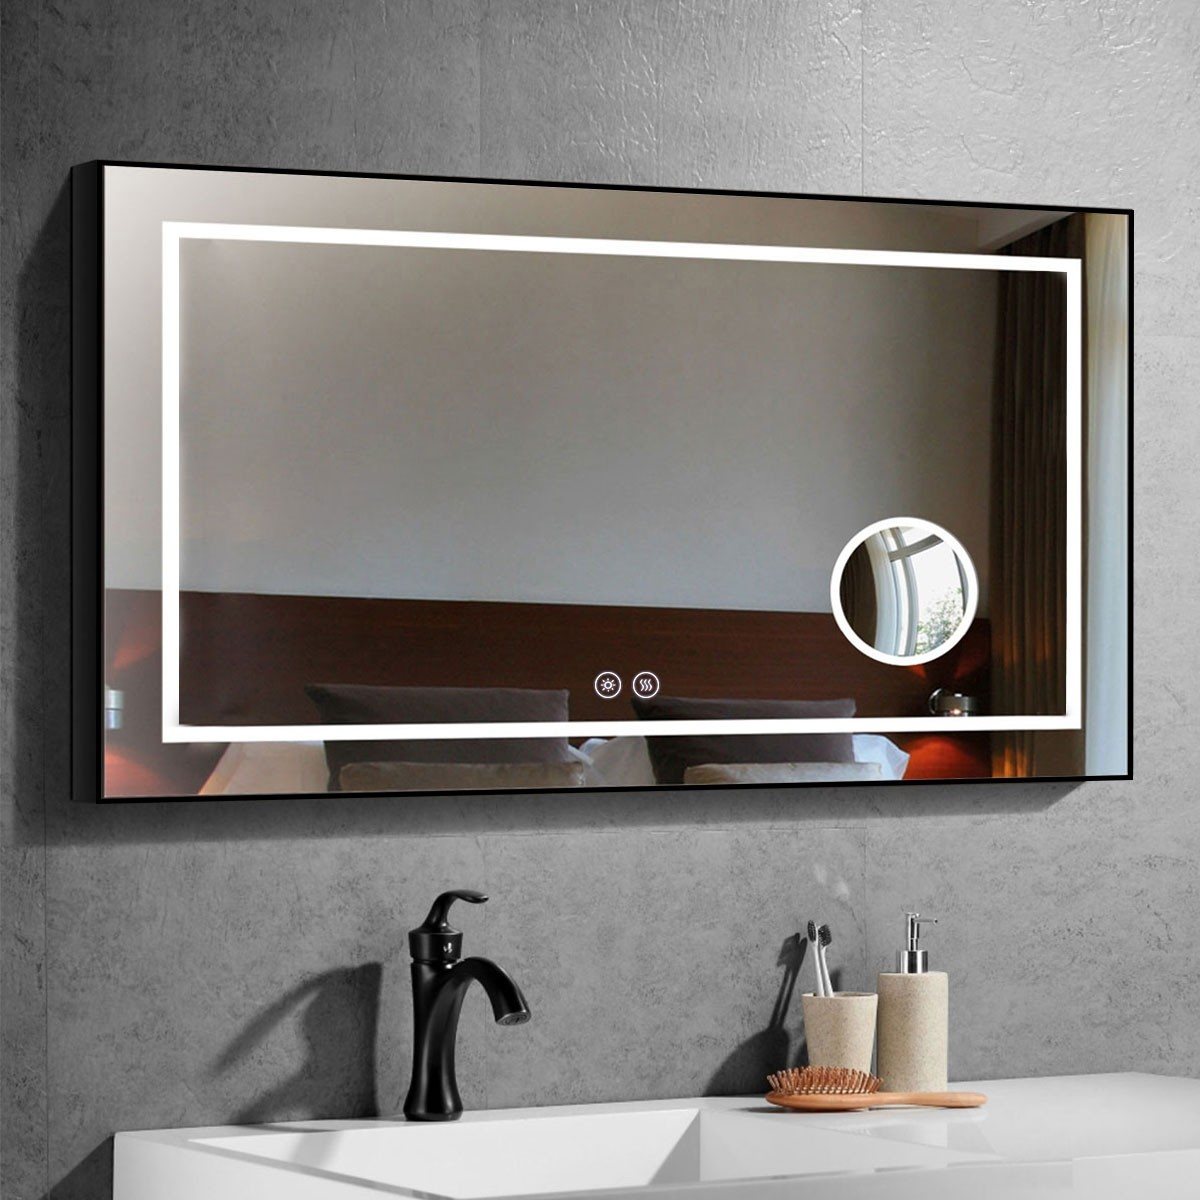 DECORAPORT 48 x 28 Inch LED Bathroom Mirror/Dress Mirror with Touch Button, Magnifier, Anti Fog, Dimmable, Horizontal Mount (D622-4828C)